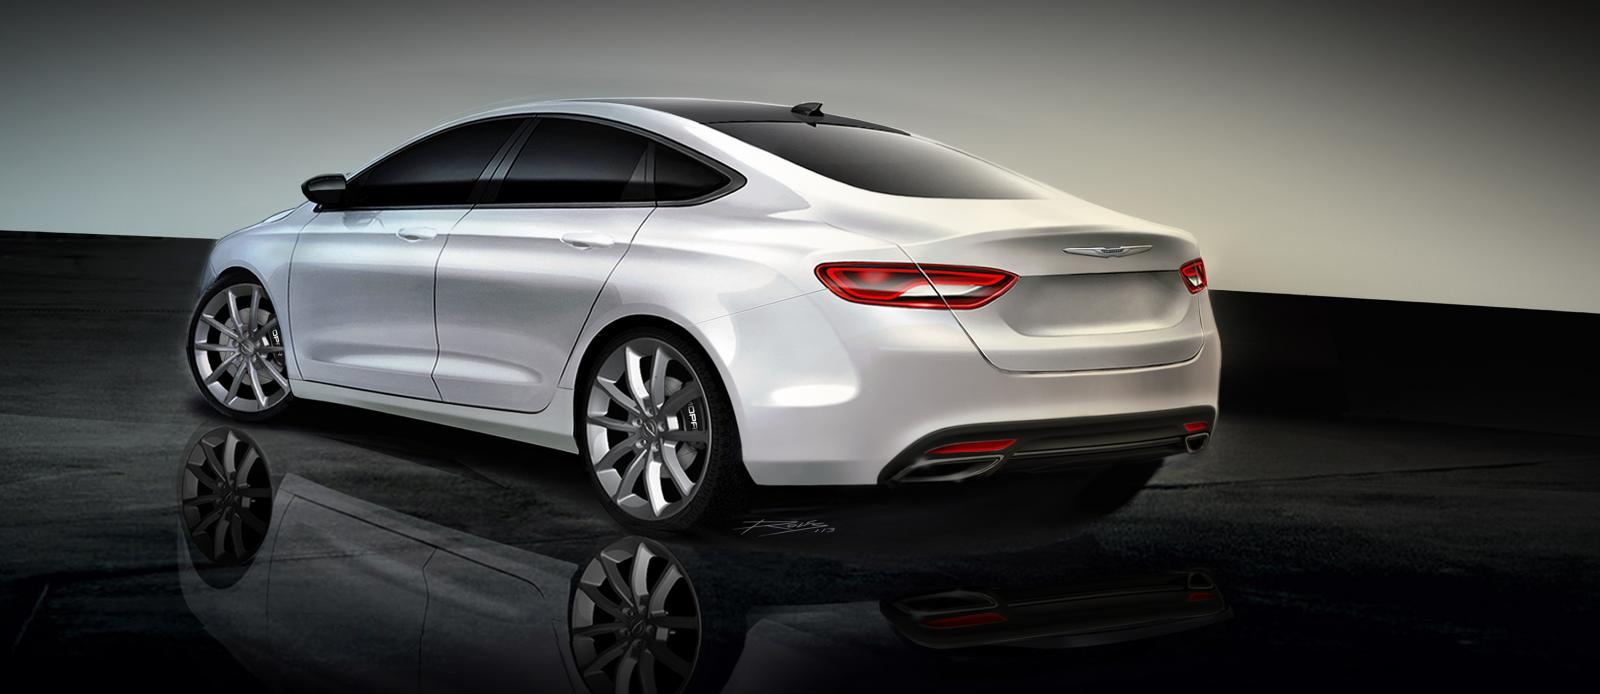 1600x694 - Chrysler 200 Wallpapers 19